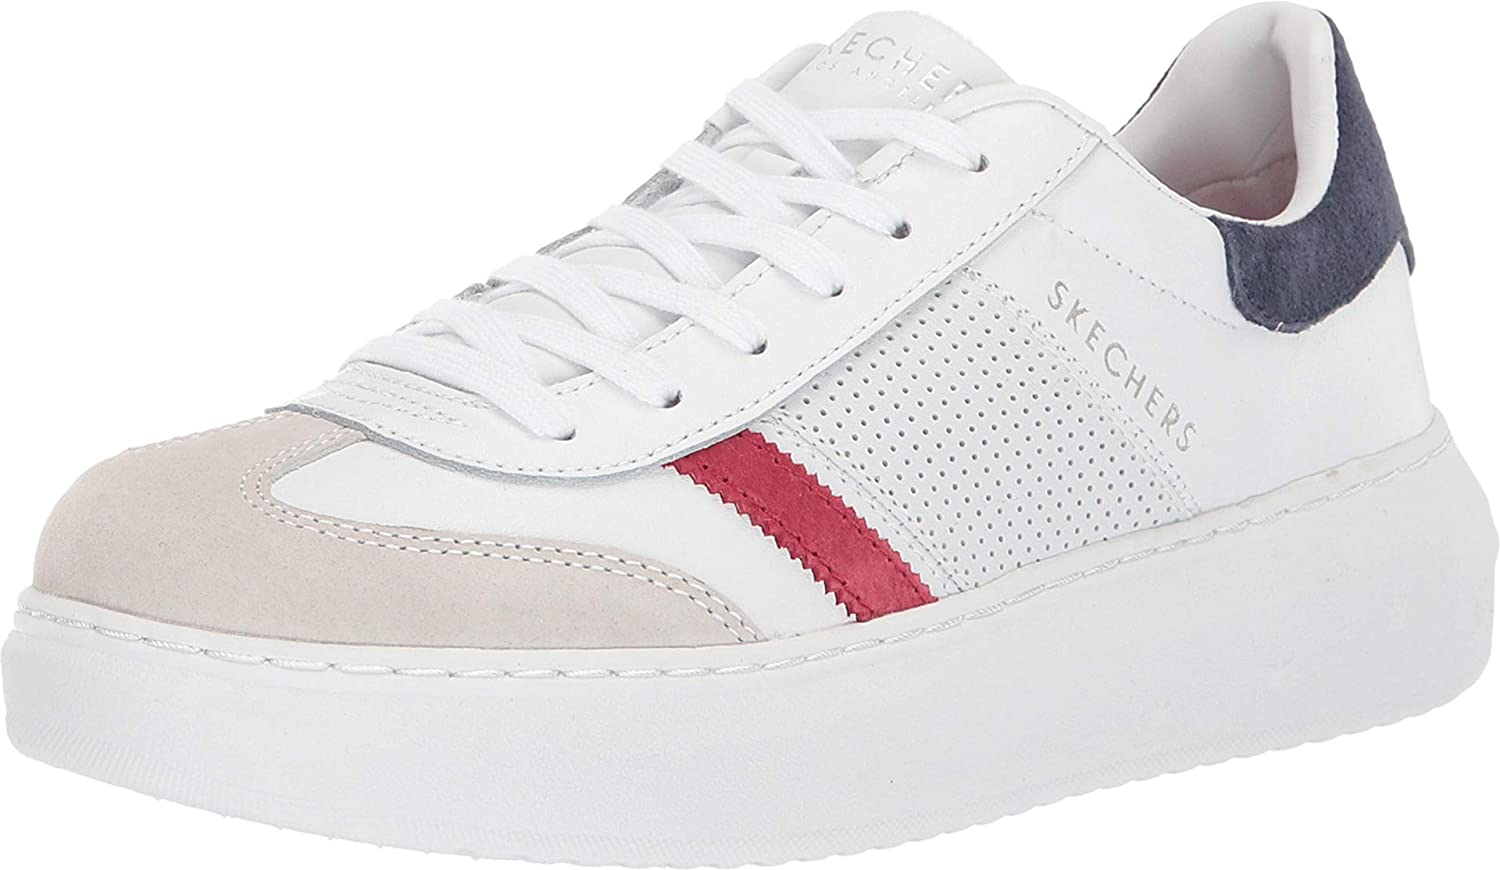 Skechers High Street Elevated Trust supreme Retro Shoes Womens